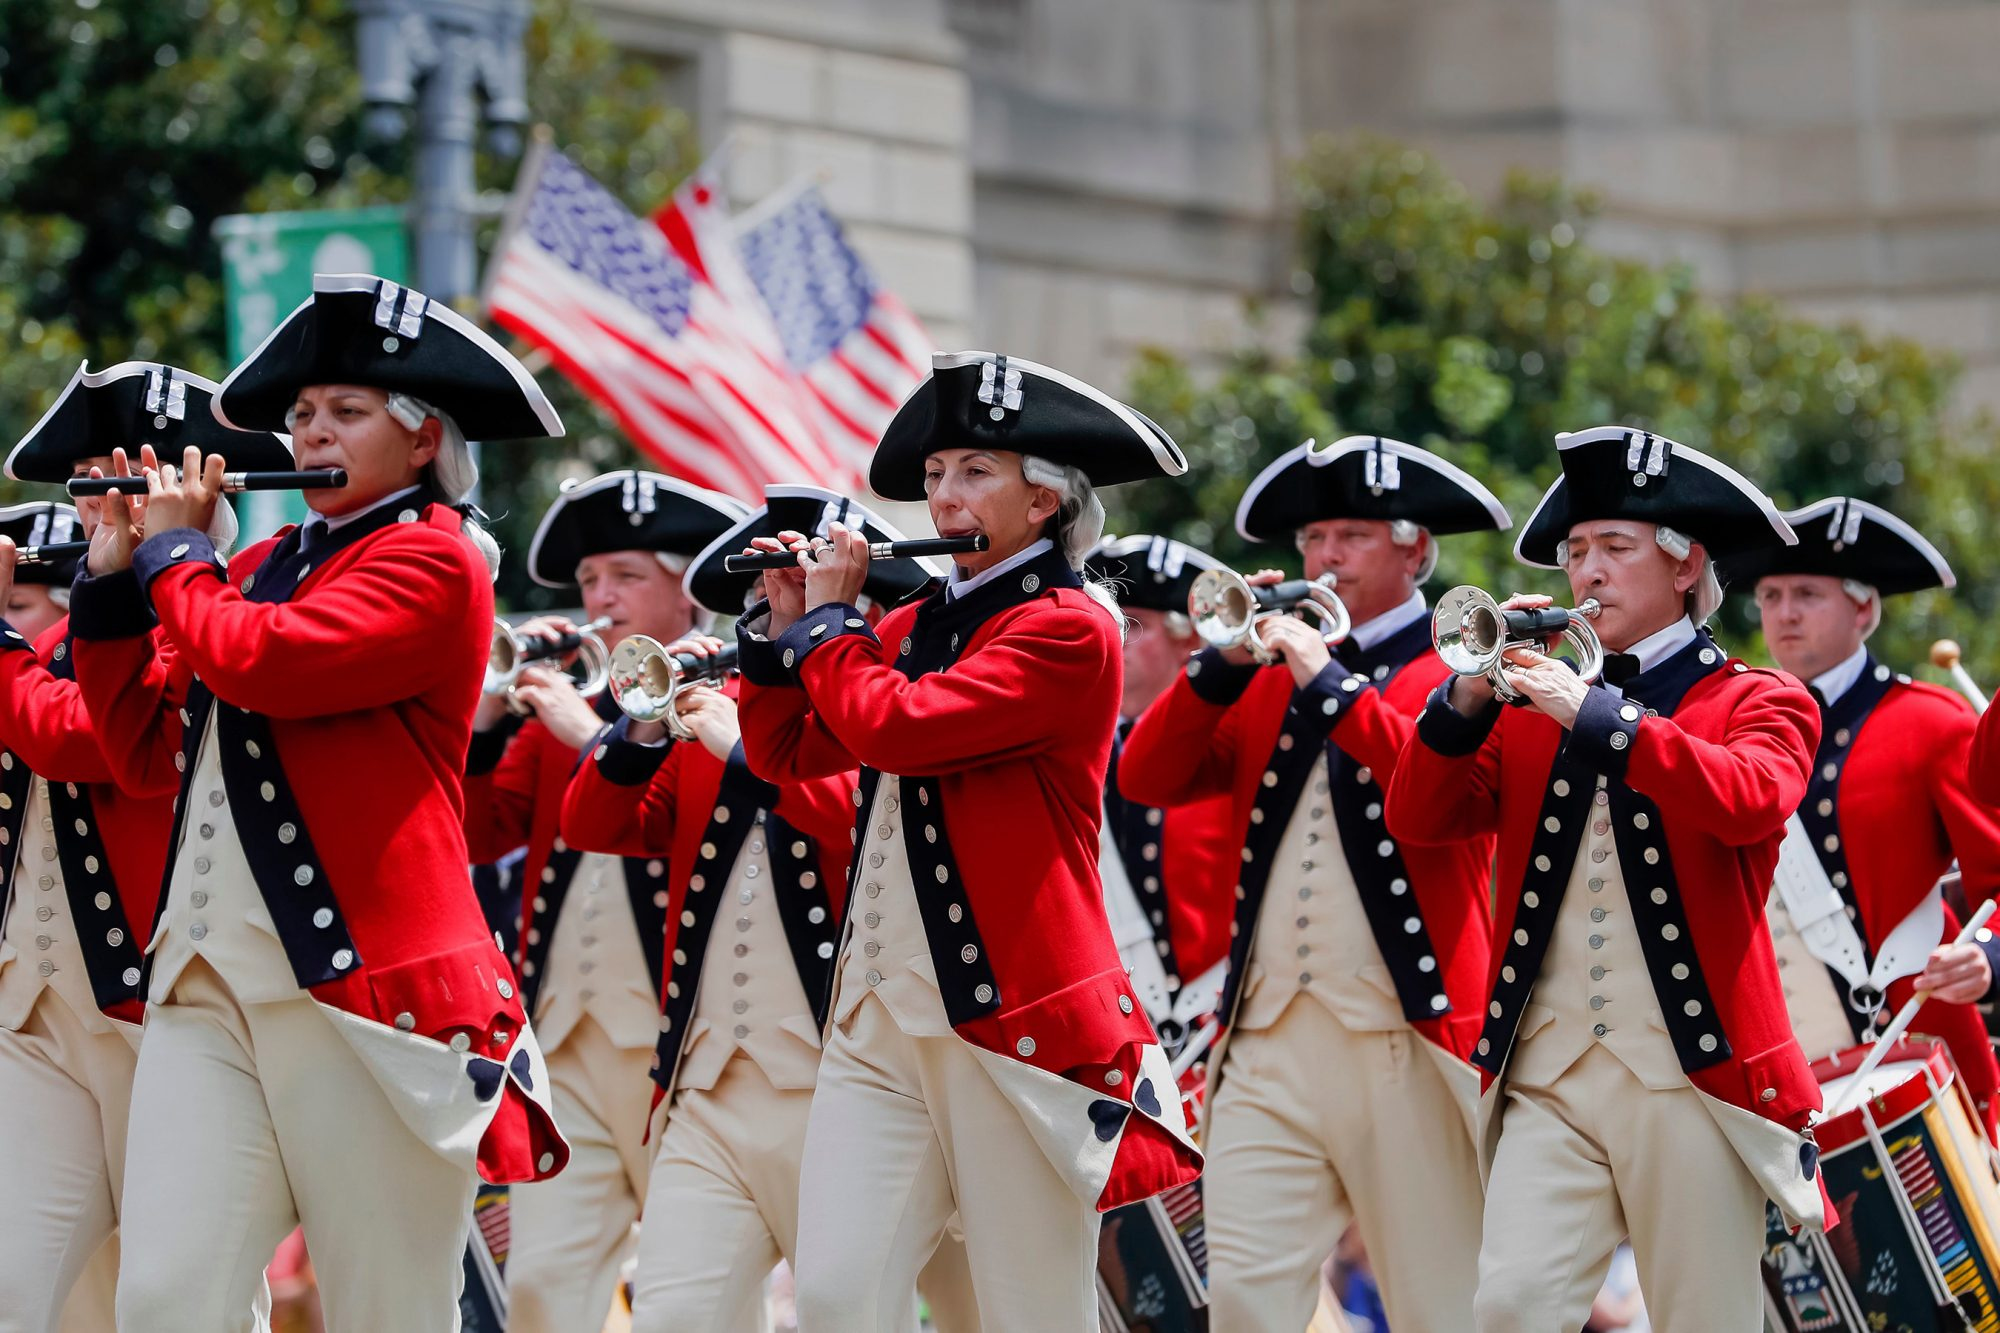 Fourth of July festivities on July 4, 2019 in Washington, DC